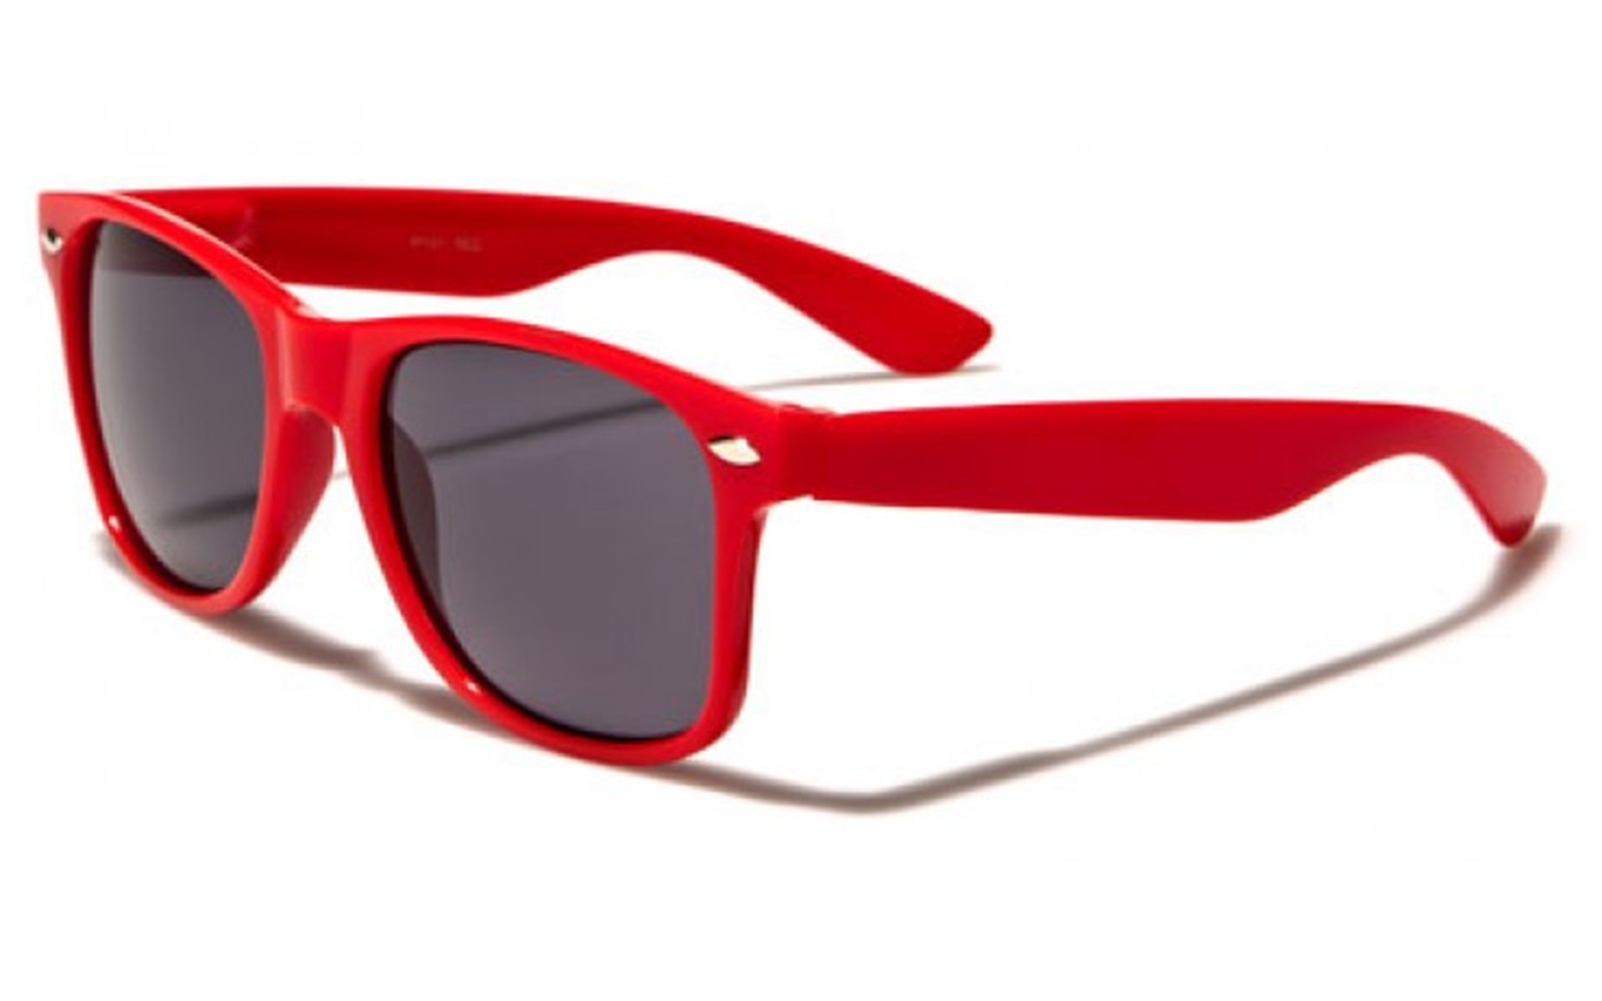 Wayfarer Sunglasses Red